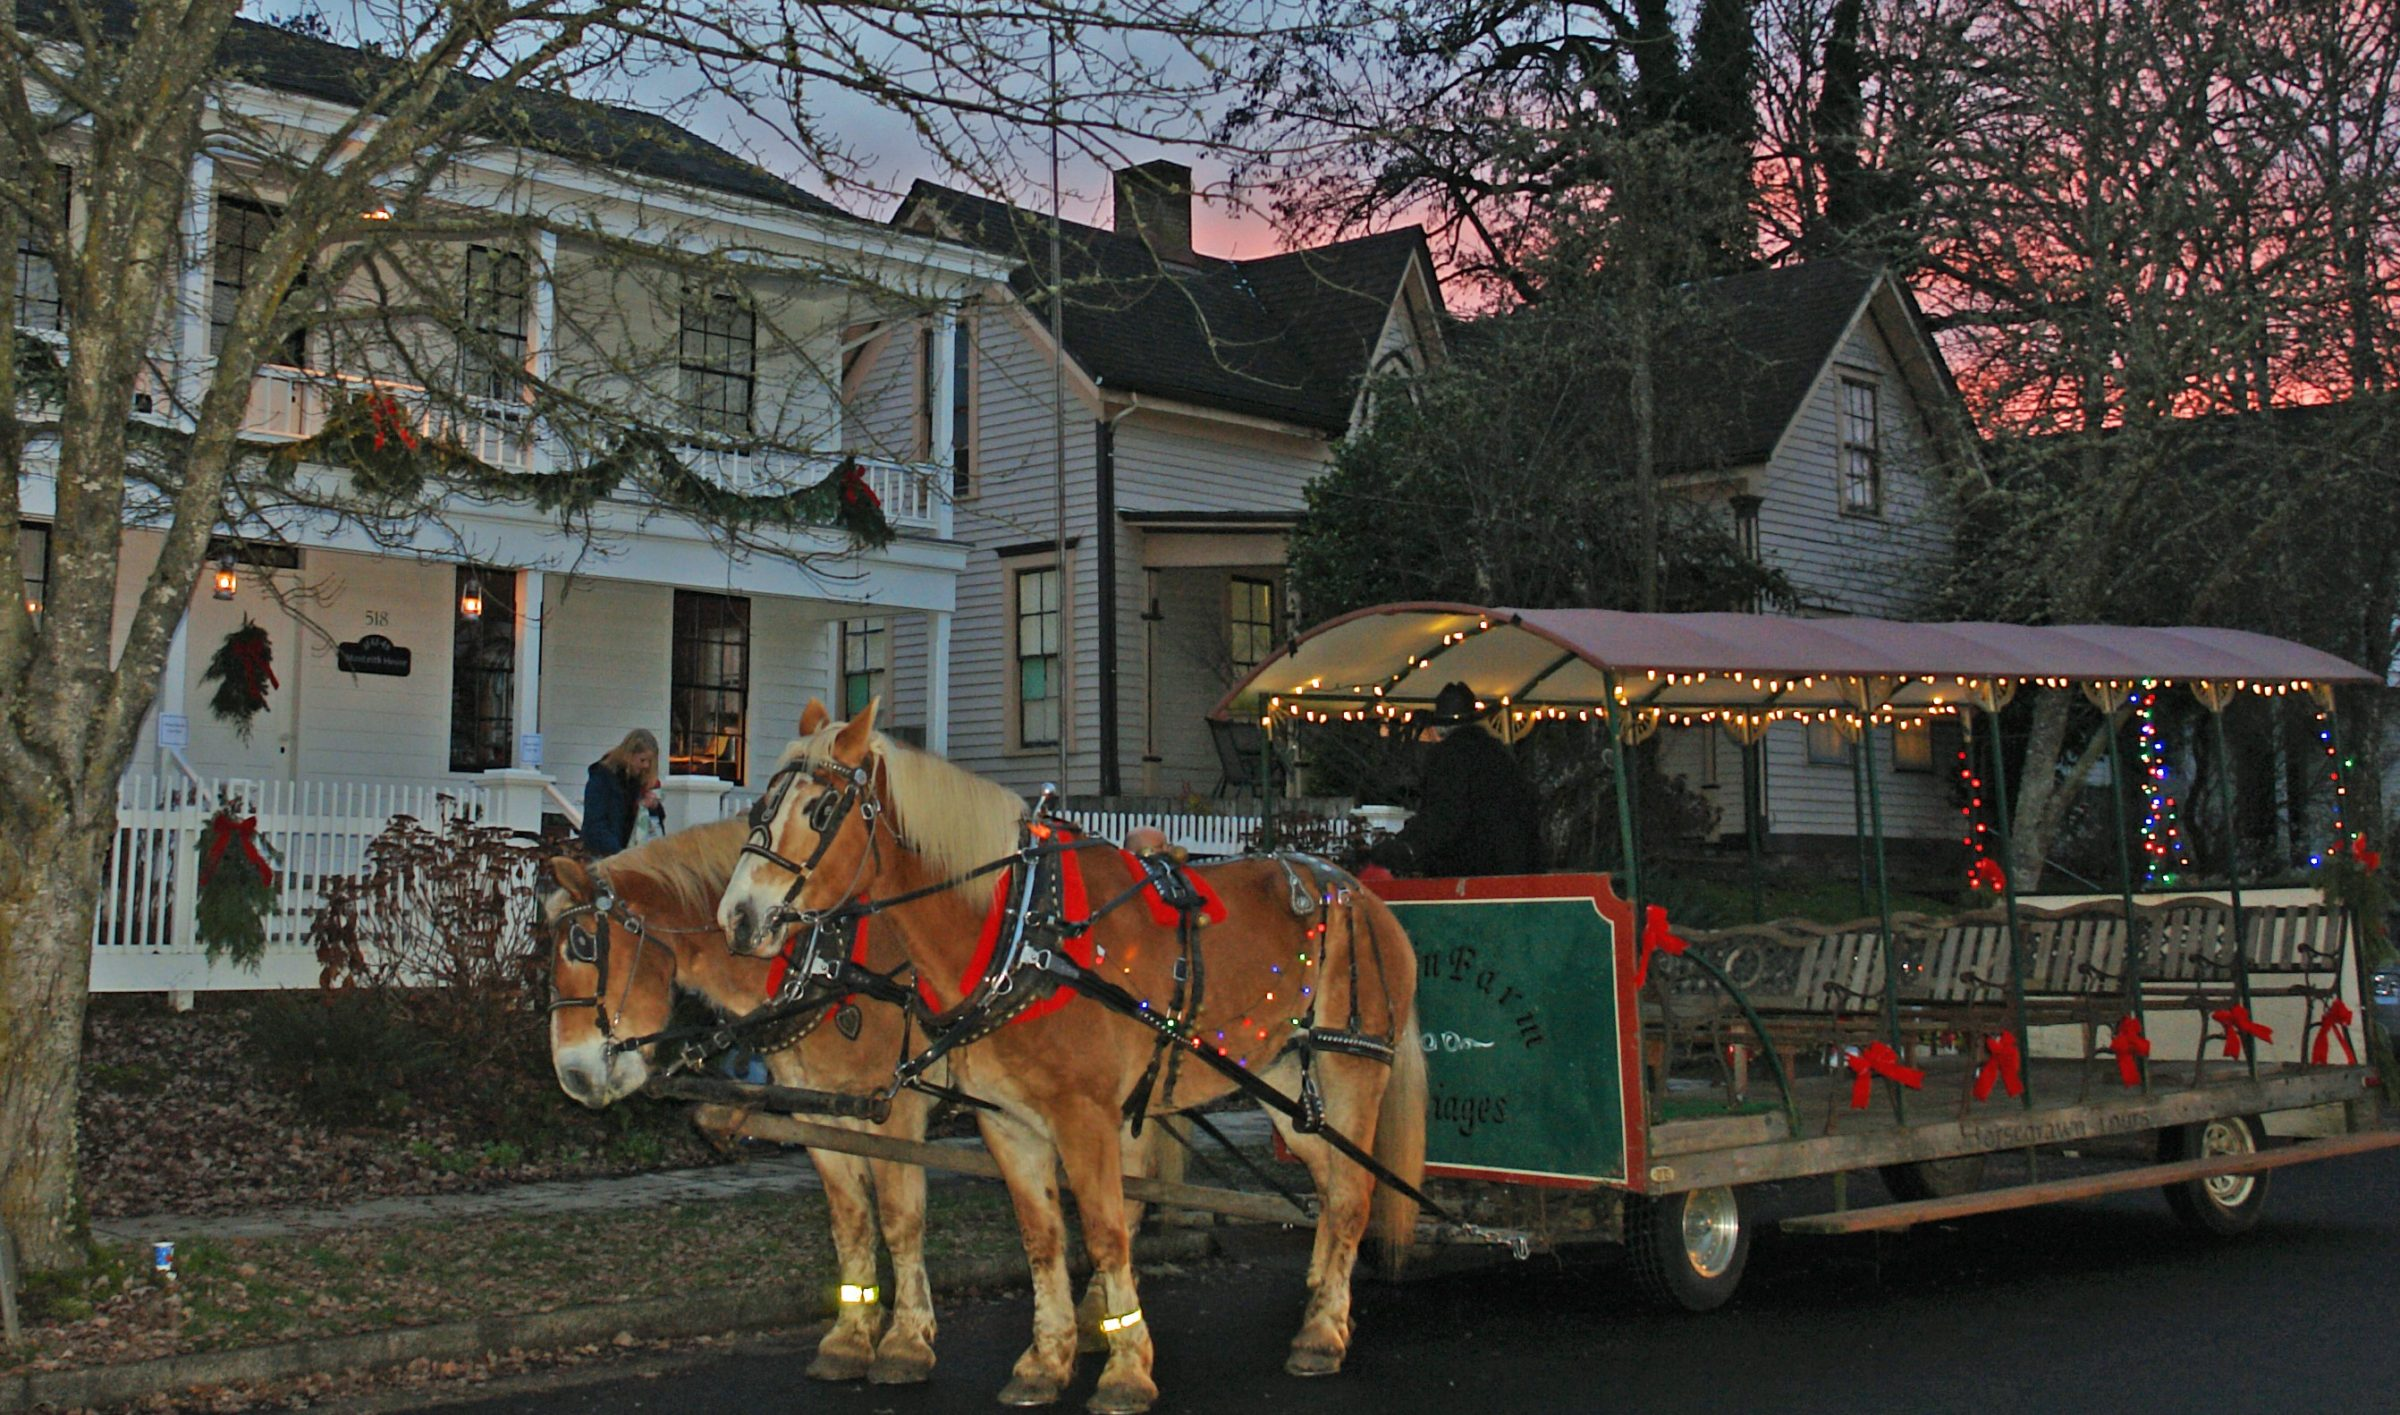 Photo of horses with wagon in front of historic house decorated for Christmas.